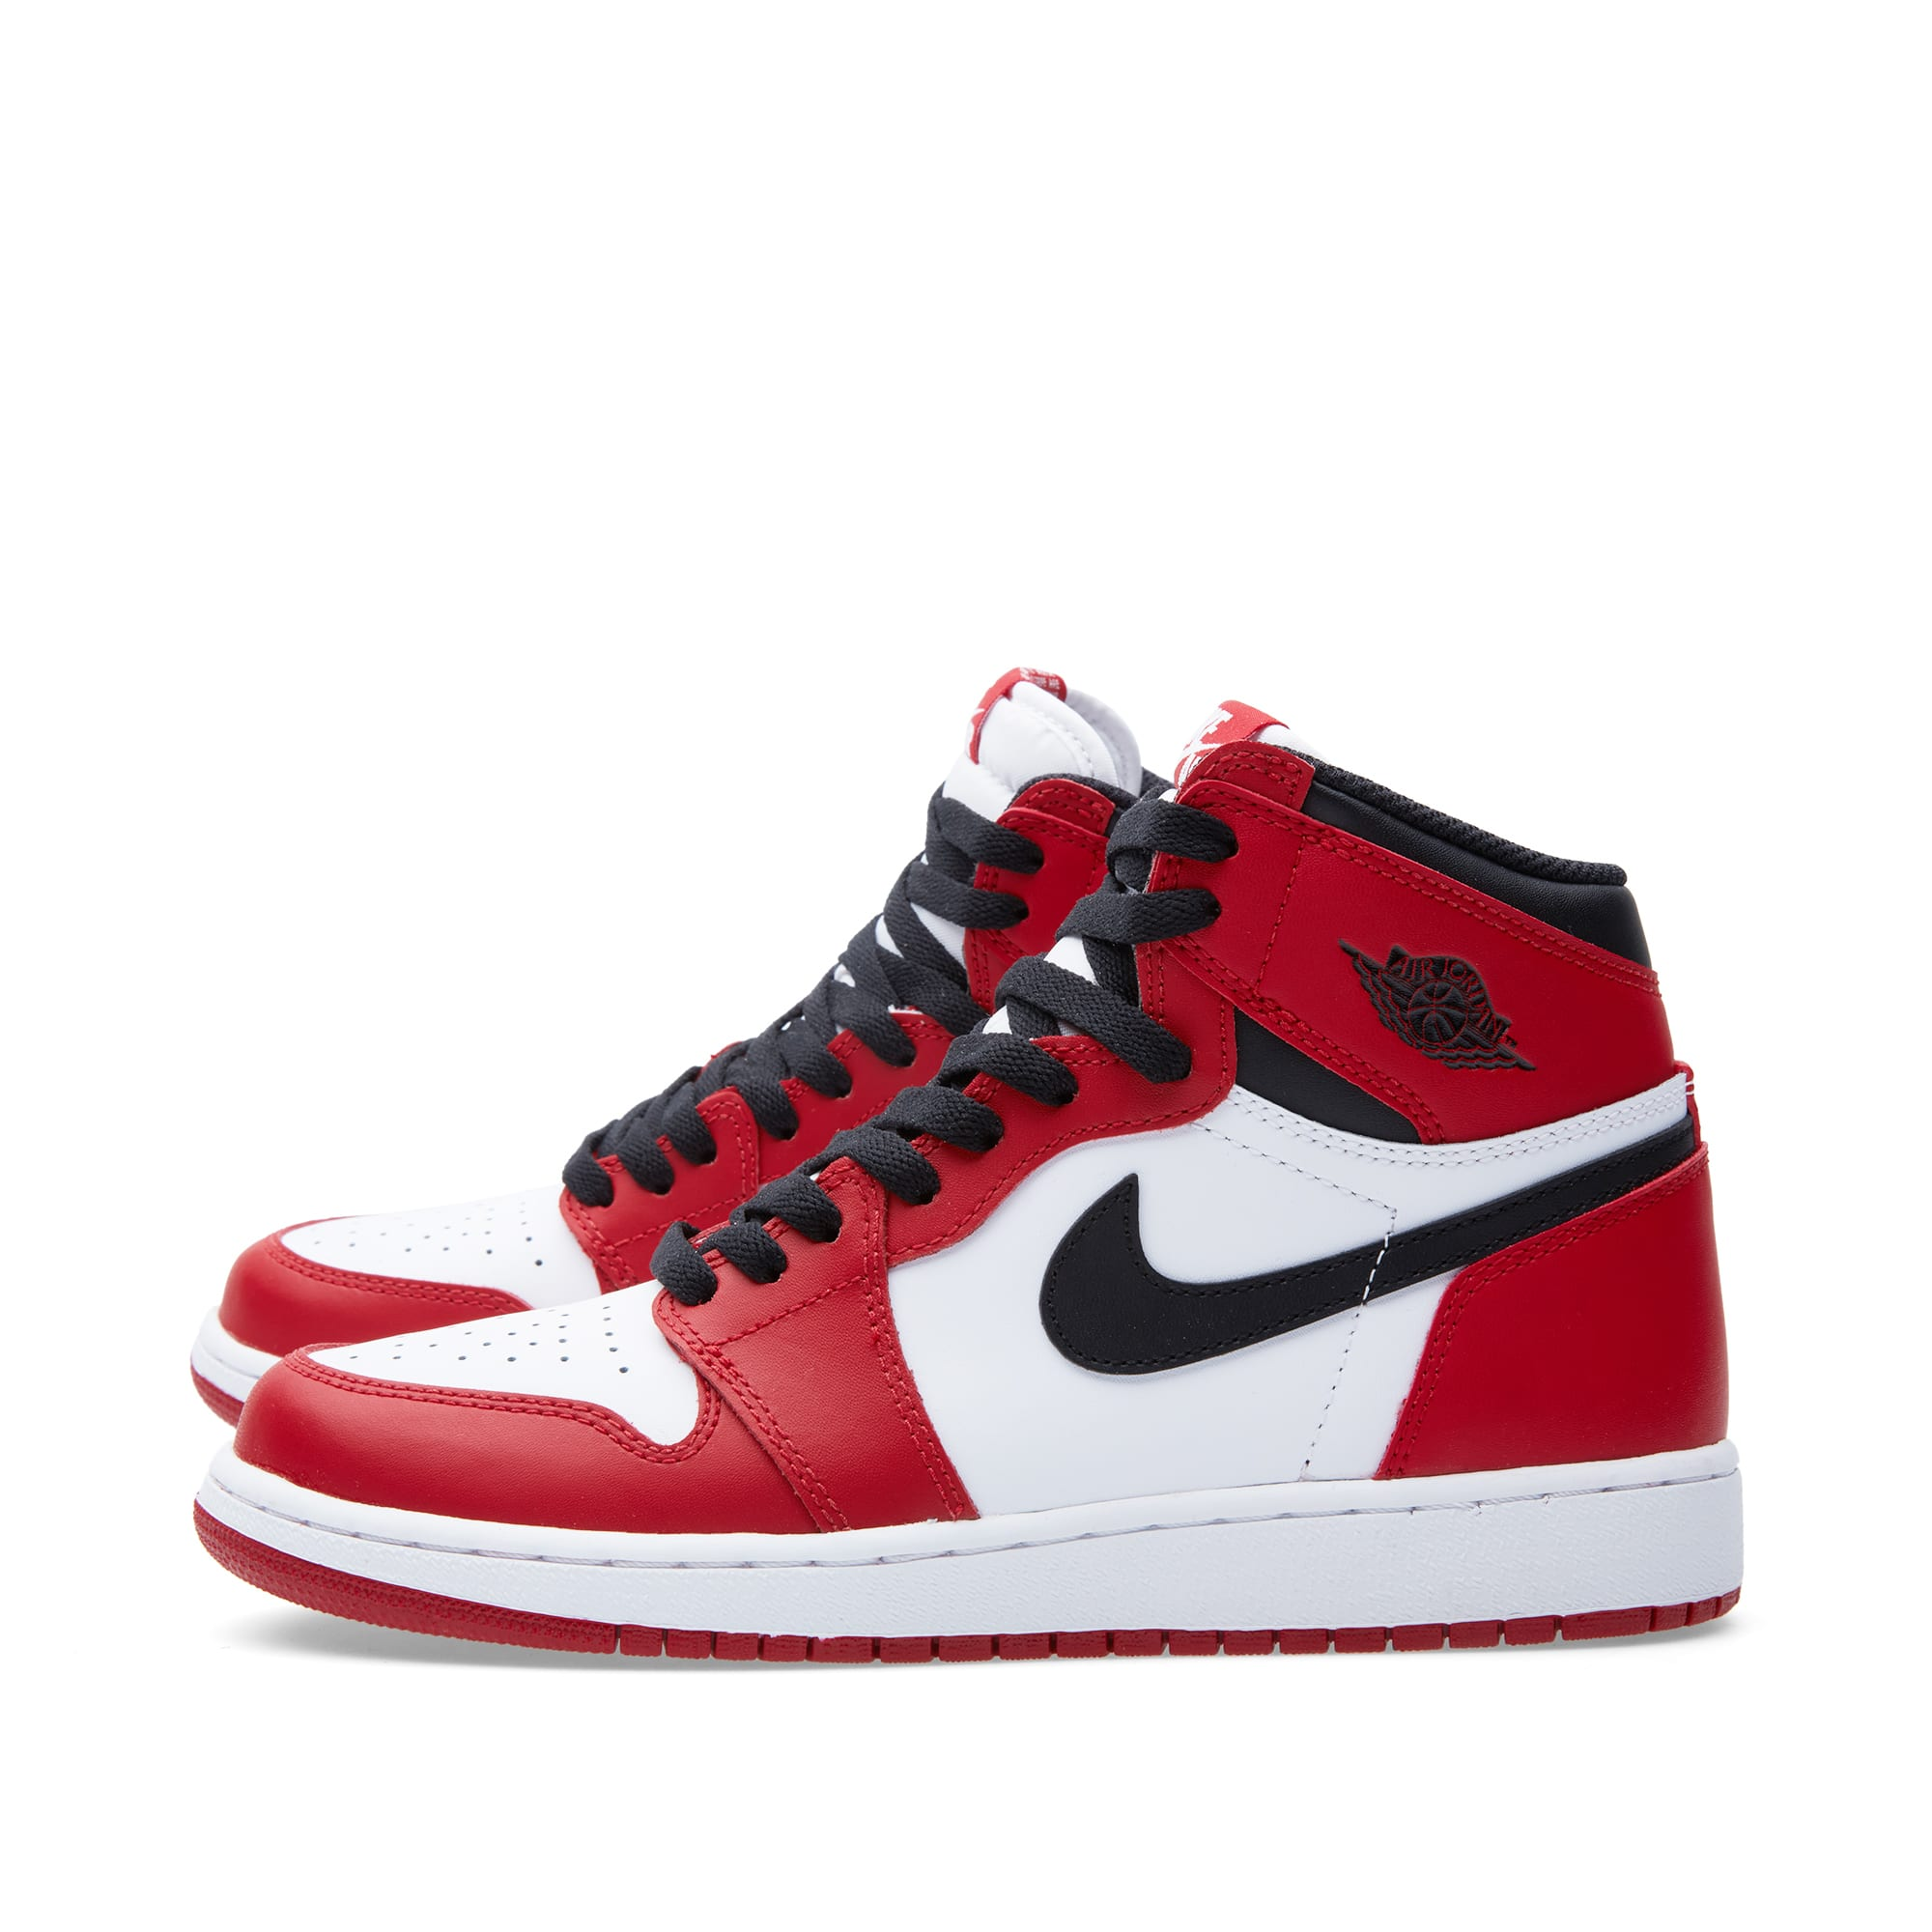 cde39c5875 Nike Air Jordan 1 Retro High OG BG 'Varsity Red'